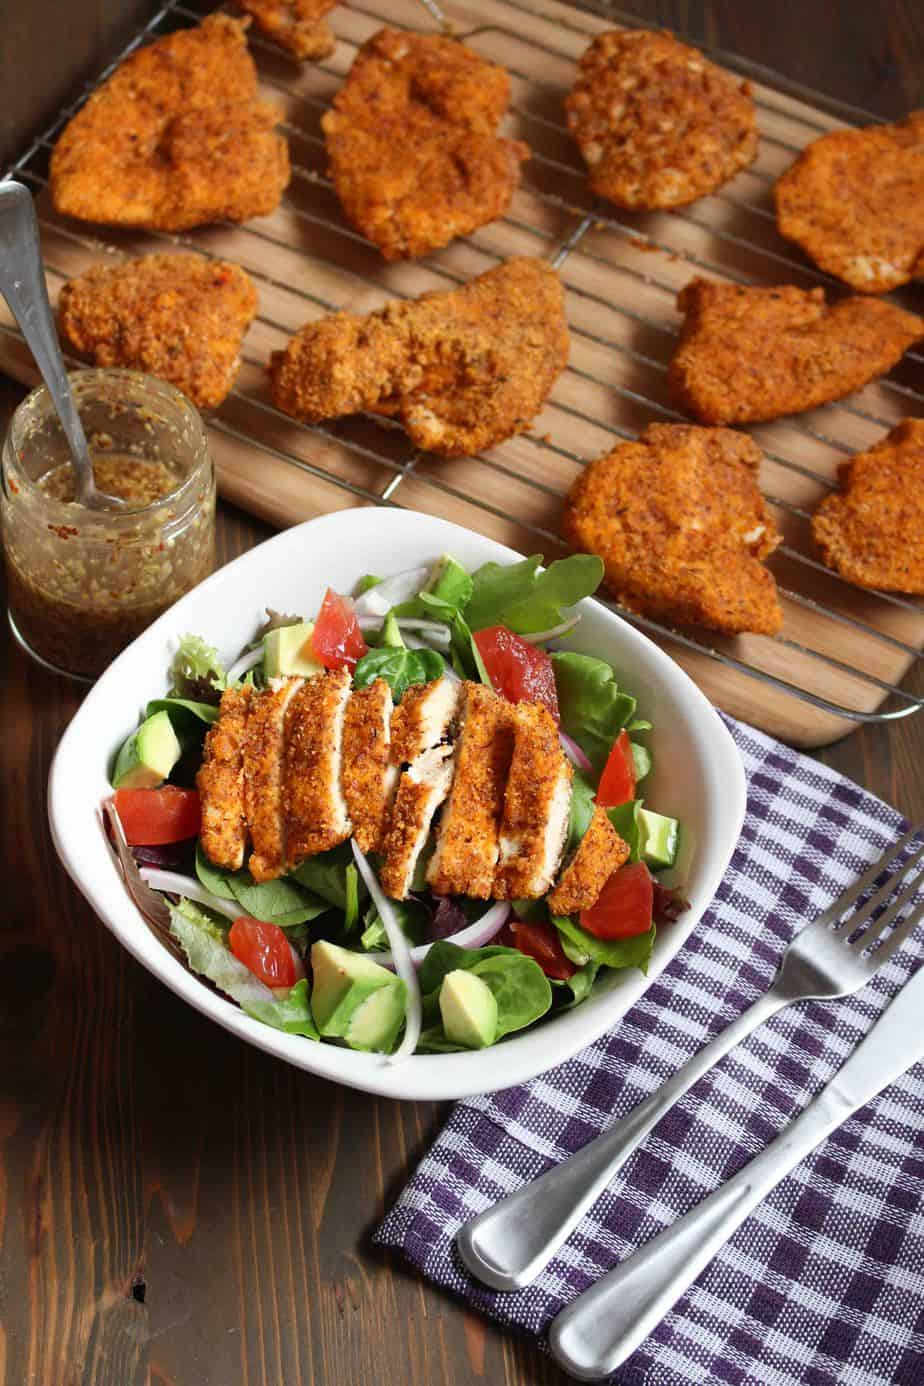 Baked Almond Chicken Salad with Horseradish Dressing | Frugal Nutrition